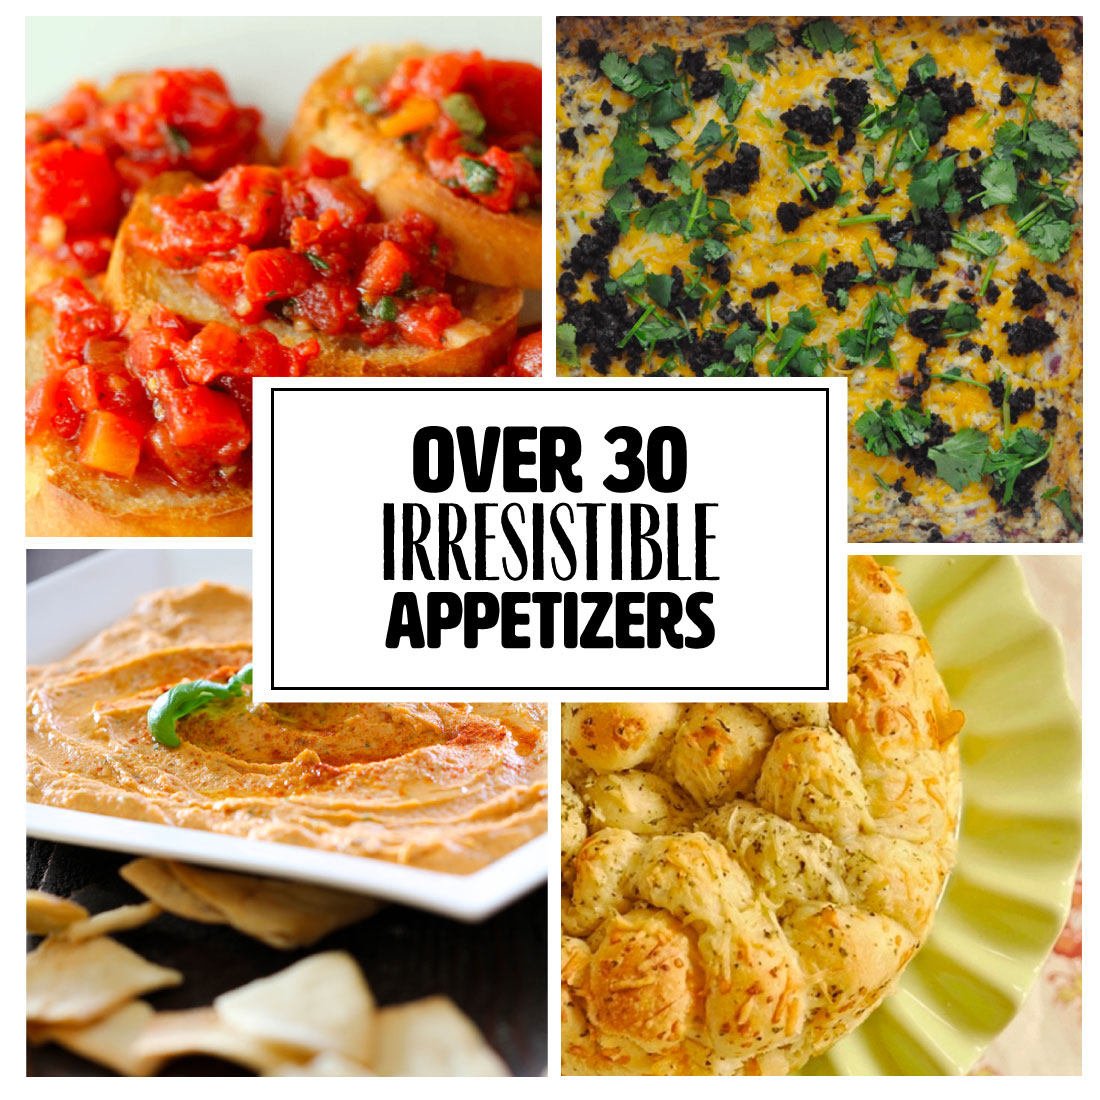 Over 30 Irresistible Appetizer Recipes - a huge list to make the best!